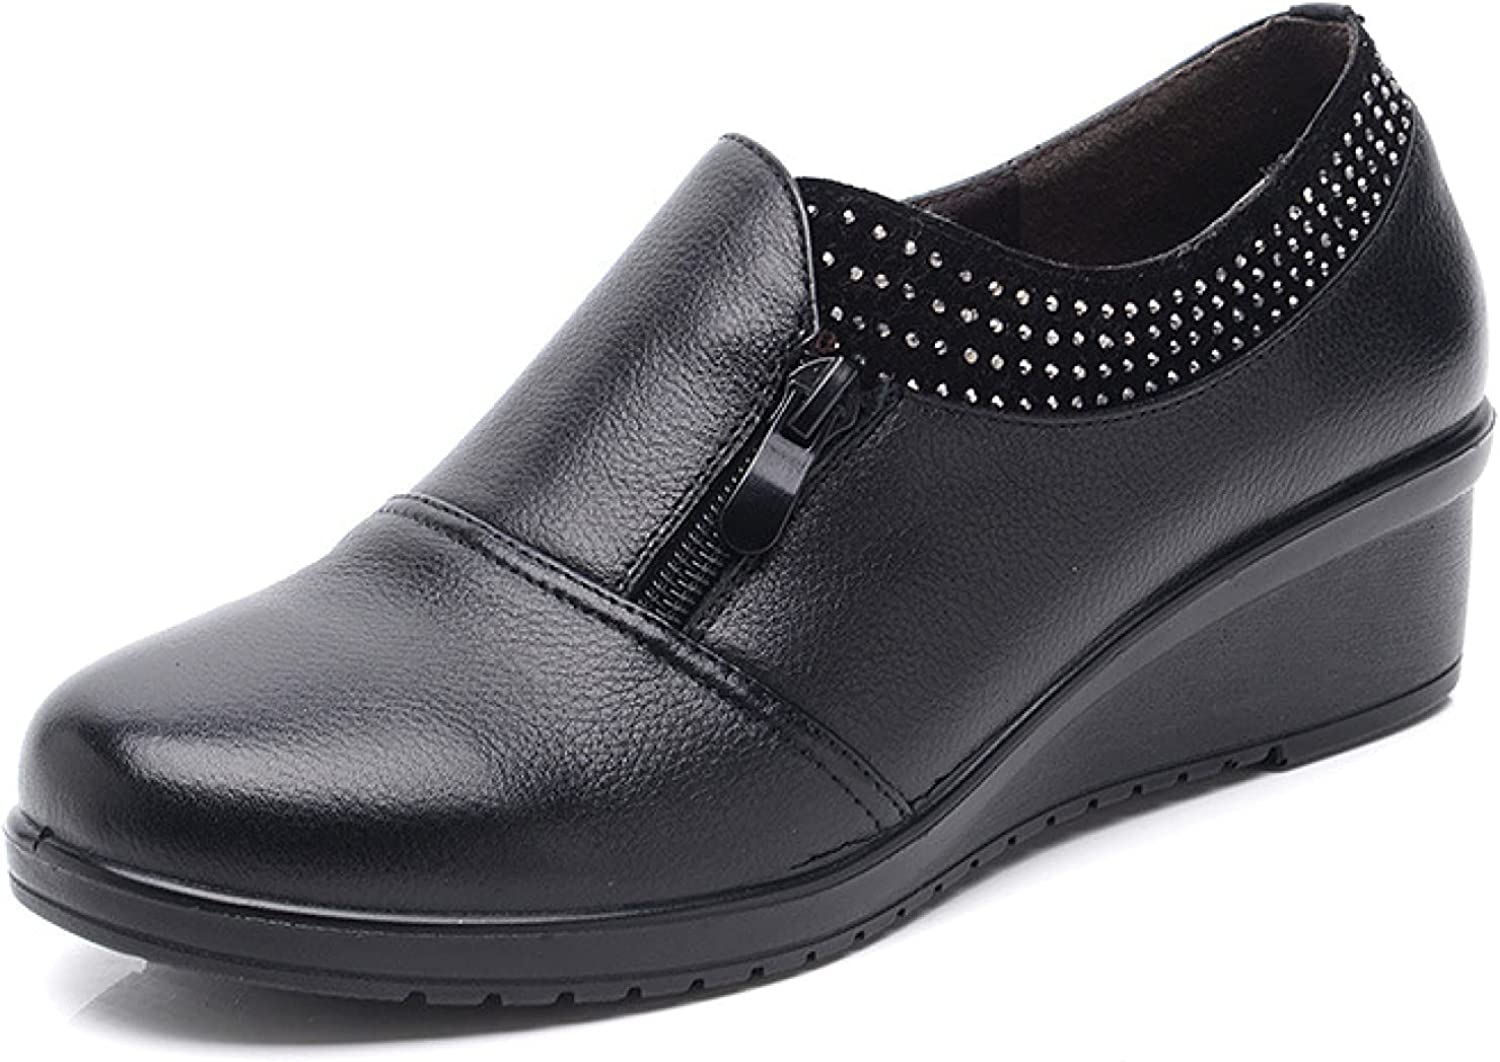 CYBLING Womens Loafers Nursing Comfort Leather Rhinestone Wear-Resistant Slip-ons with Zipper Retro Wedge Shoes for Moms